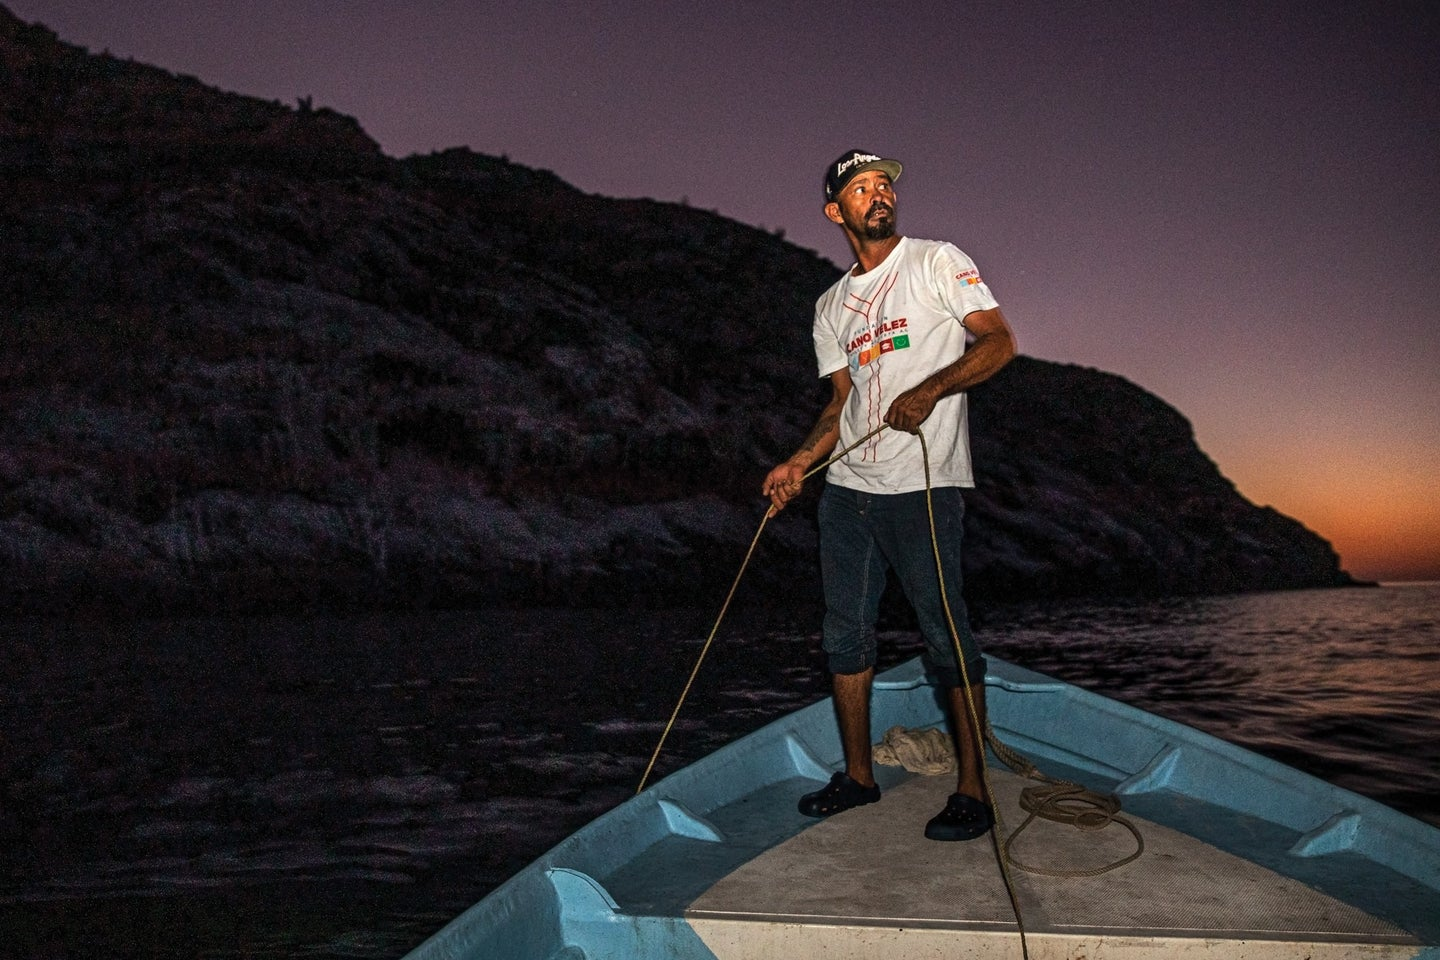 fisherman holding a rope on a boat